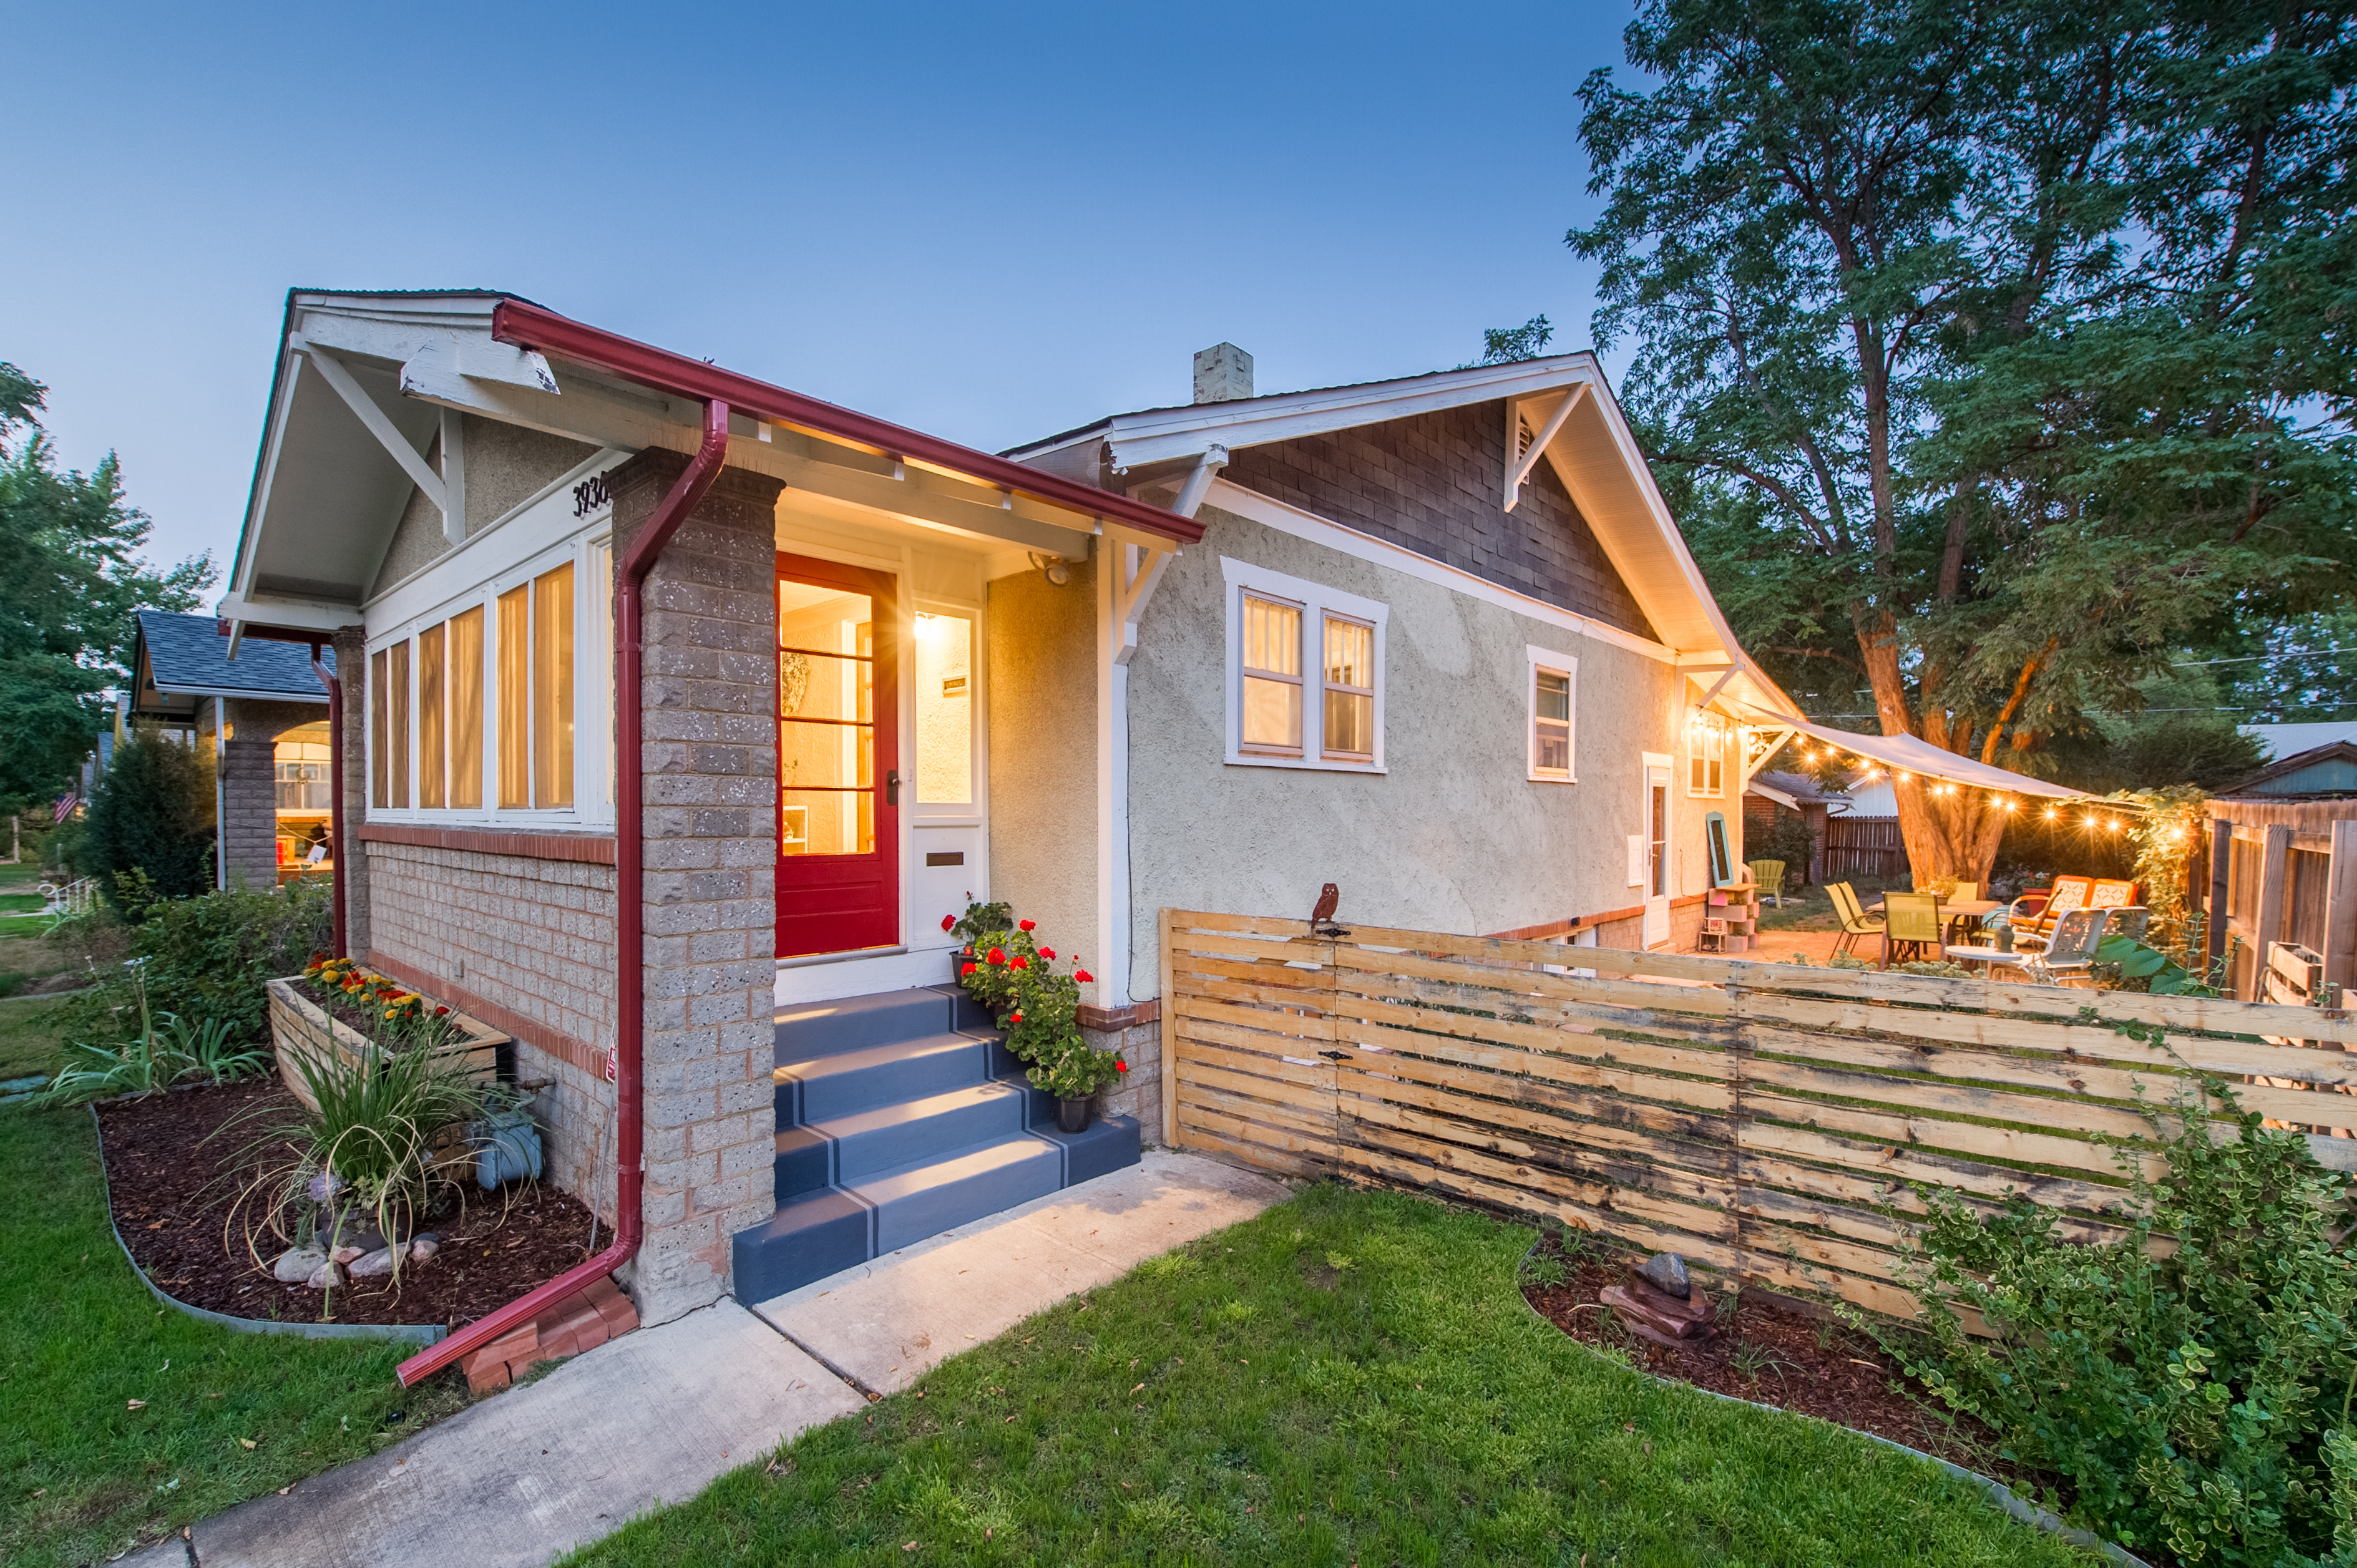 3936 Newton Street, Denver, CO. Listed for sale by LIV Sotheby's International Realty for $550,000.